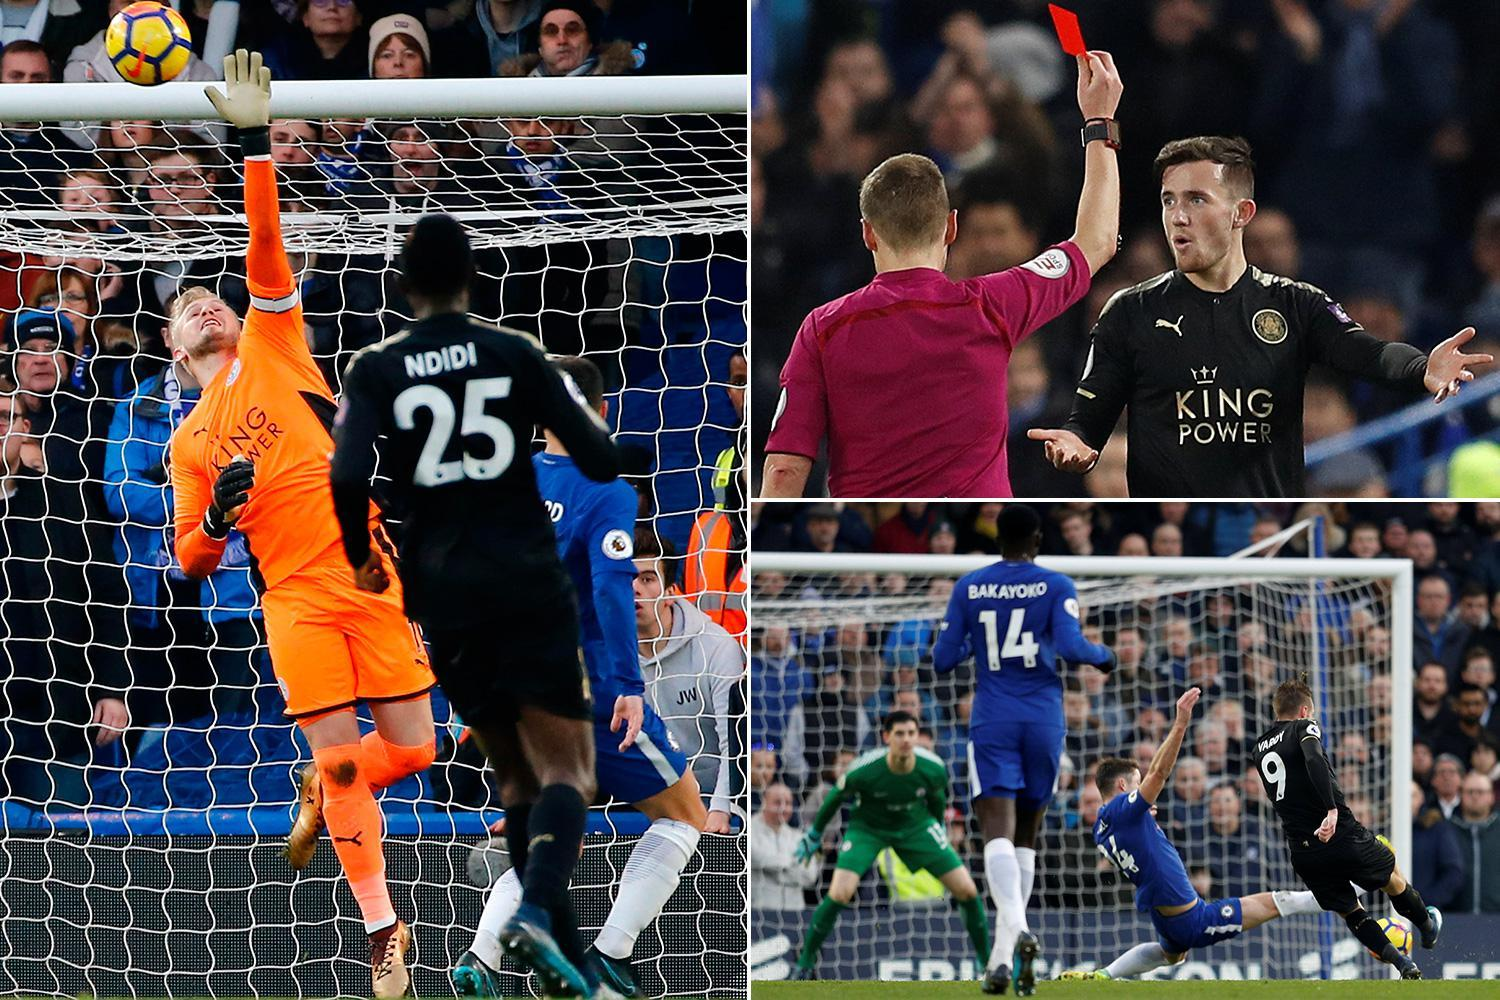 Chelsea 0 Leicester 0: Blues squander huge chance to go second in the Premier League with goalless draw against ten-man Foxes